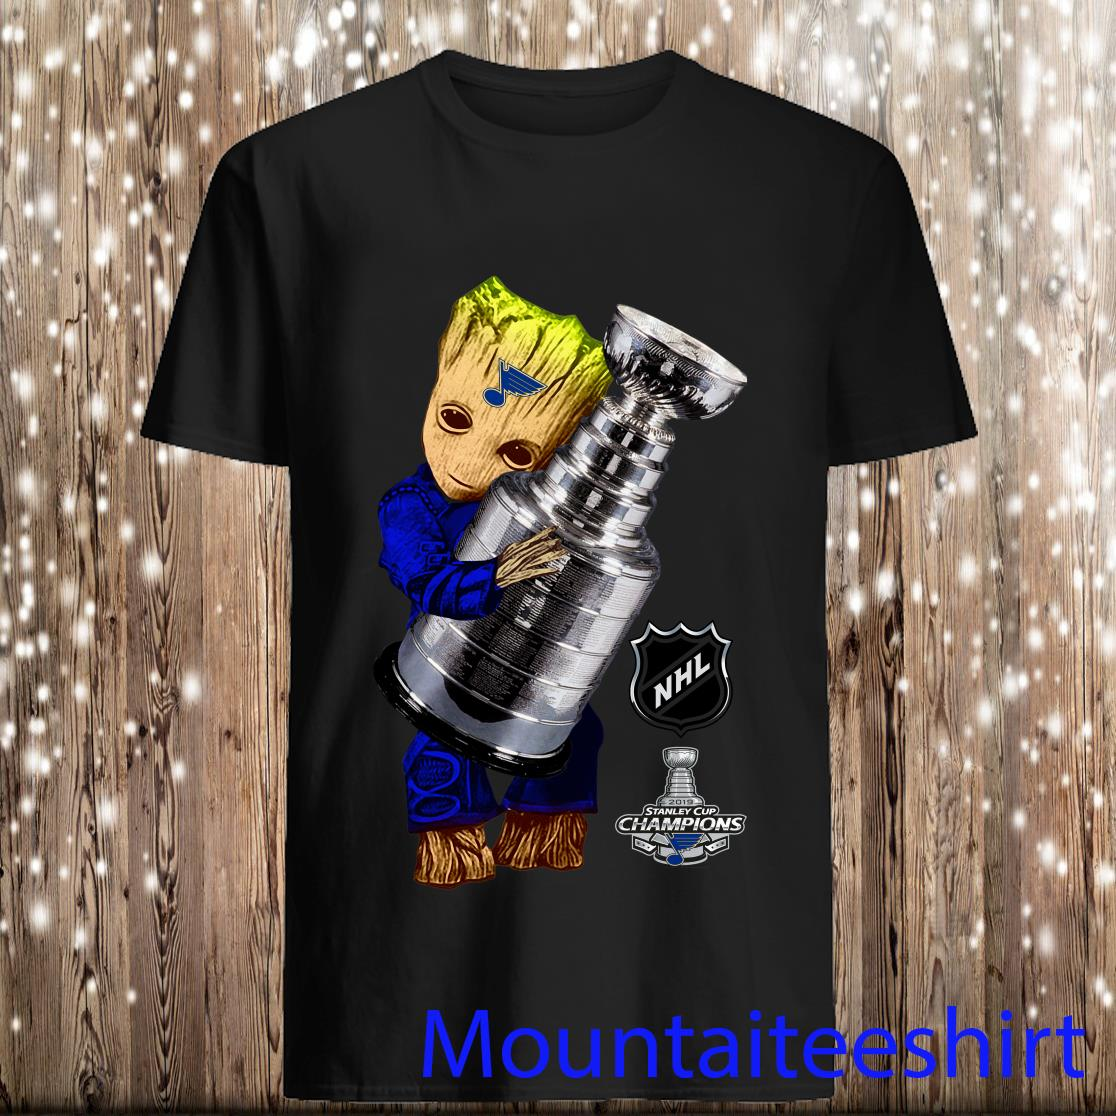 Baby Grood St. Louis Blues 2019 Stanley cup Champions tshirt